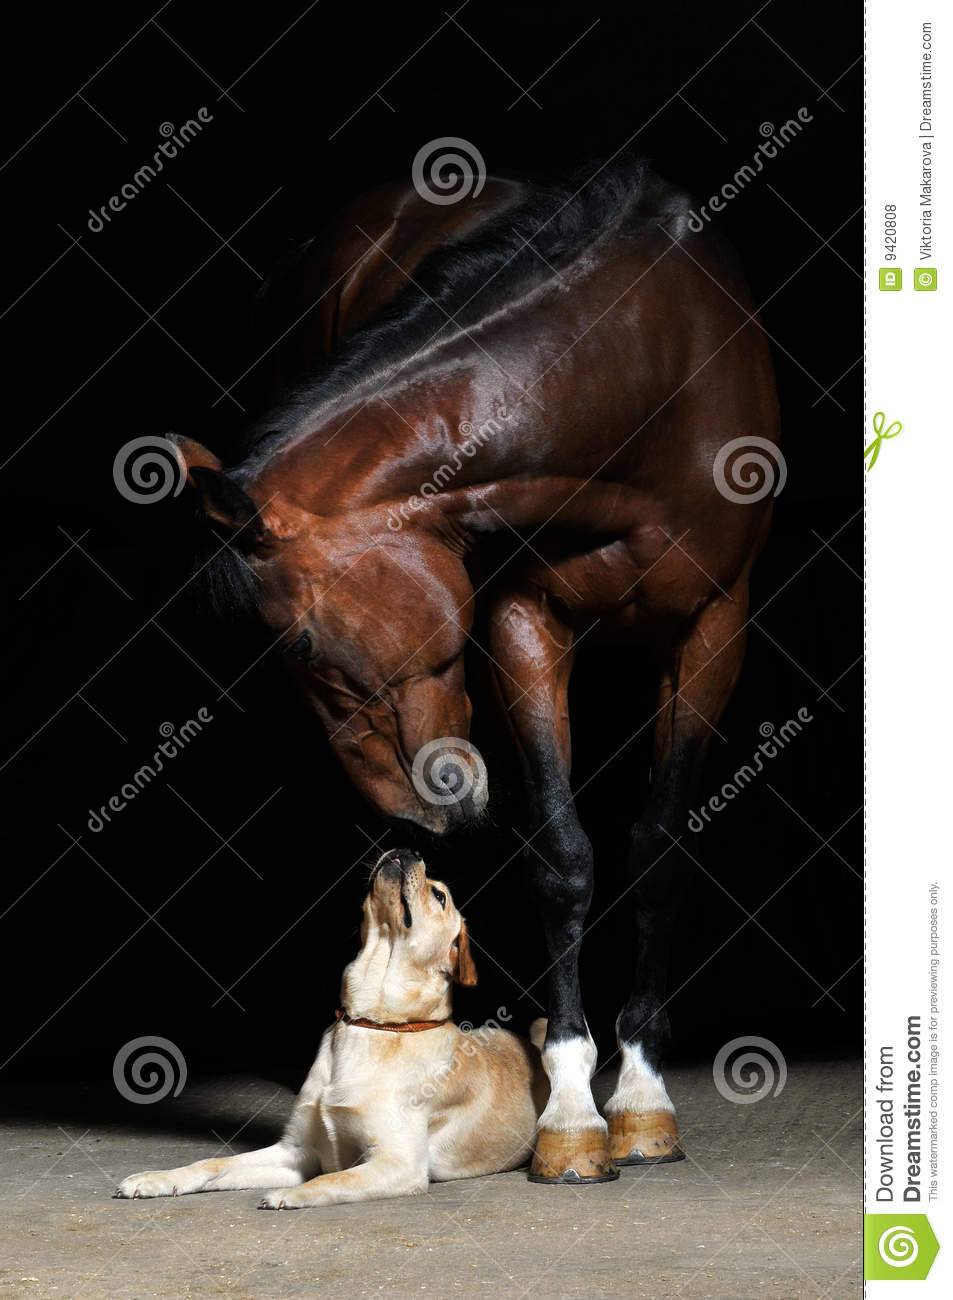 Horse and dog on the black background